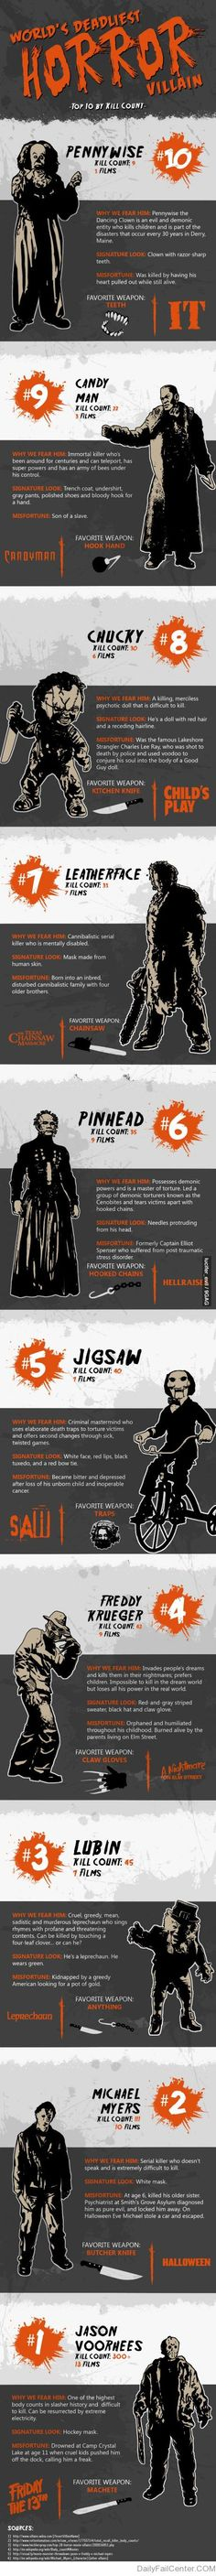 World's deadliest horror villains